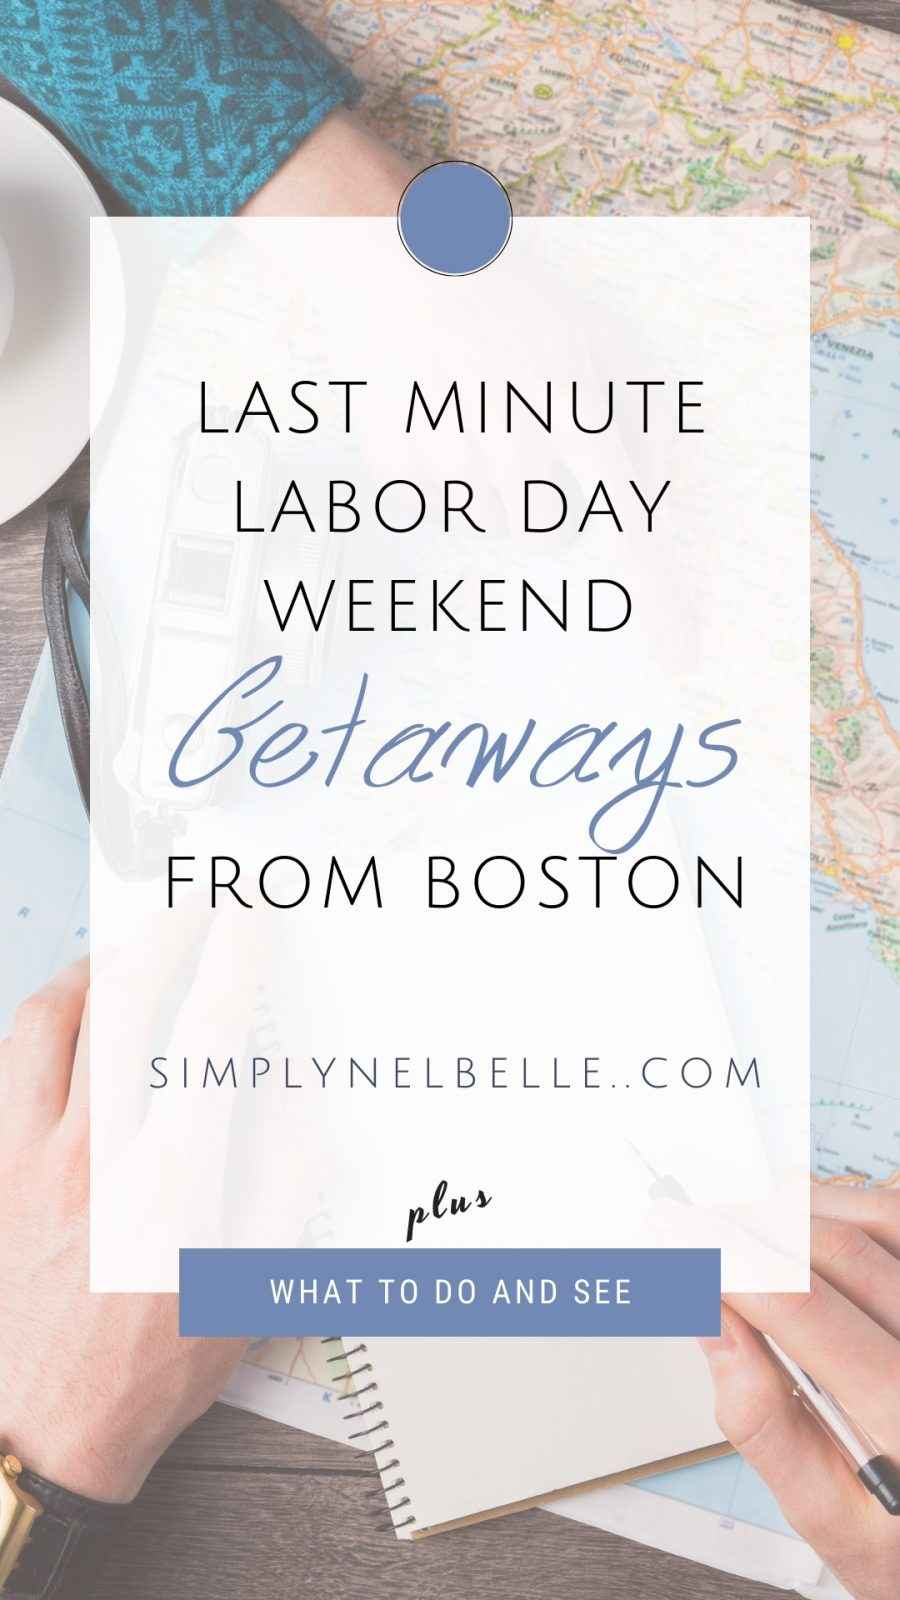 pinterest pin - last minute labor day weekend getaways from boston - labor day weekend getaways - simply nel belle - new england road trips